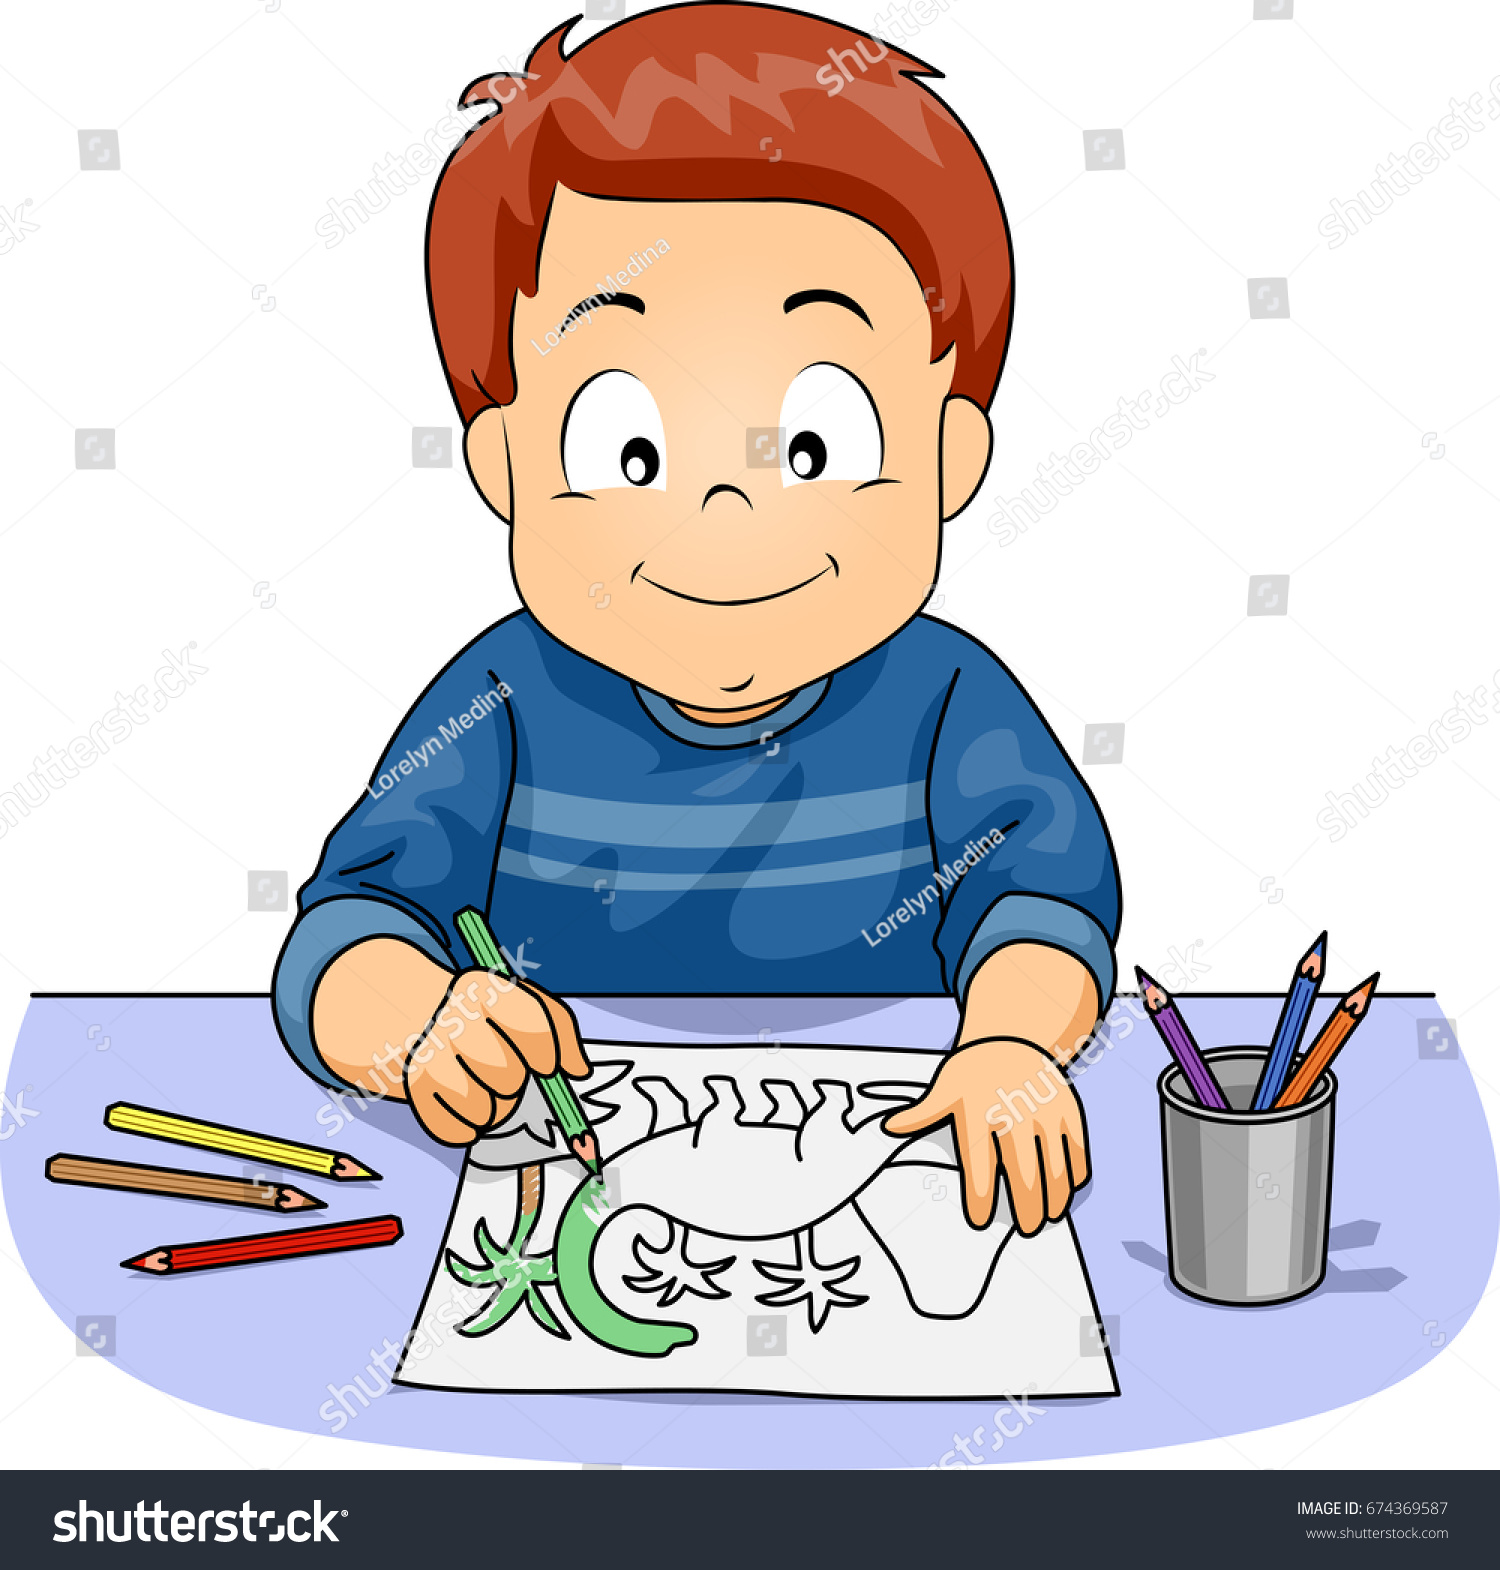 Illustration Featuring Cute Little Boy Coloring Stock Vector ...